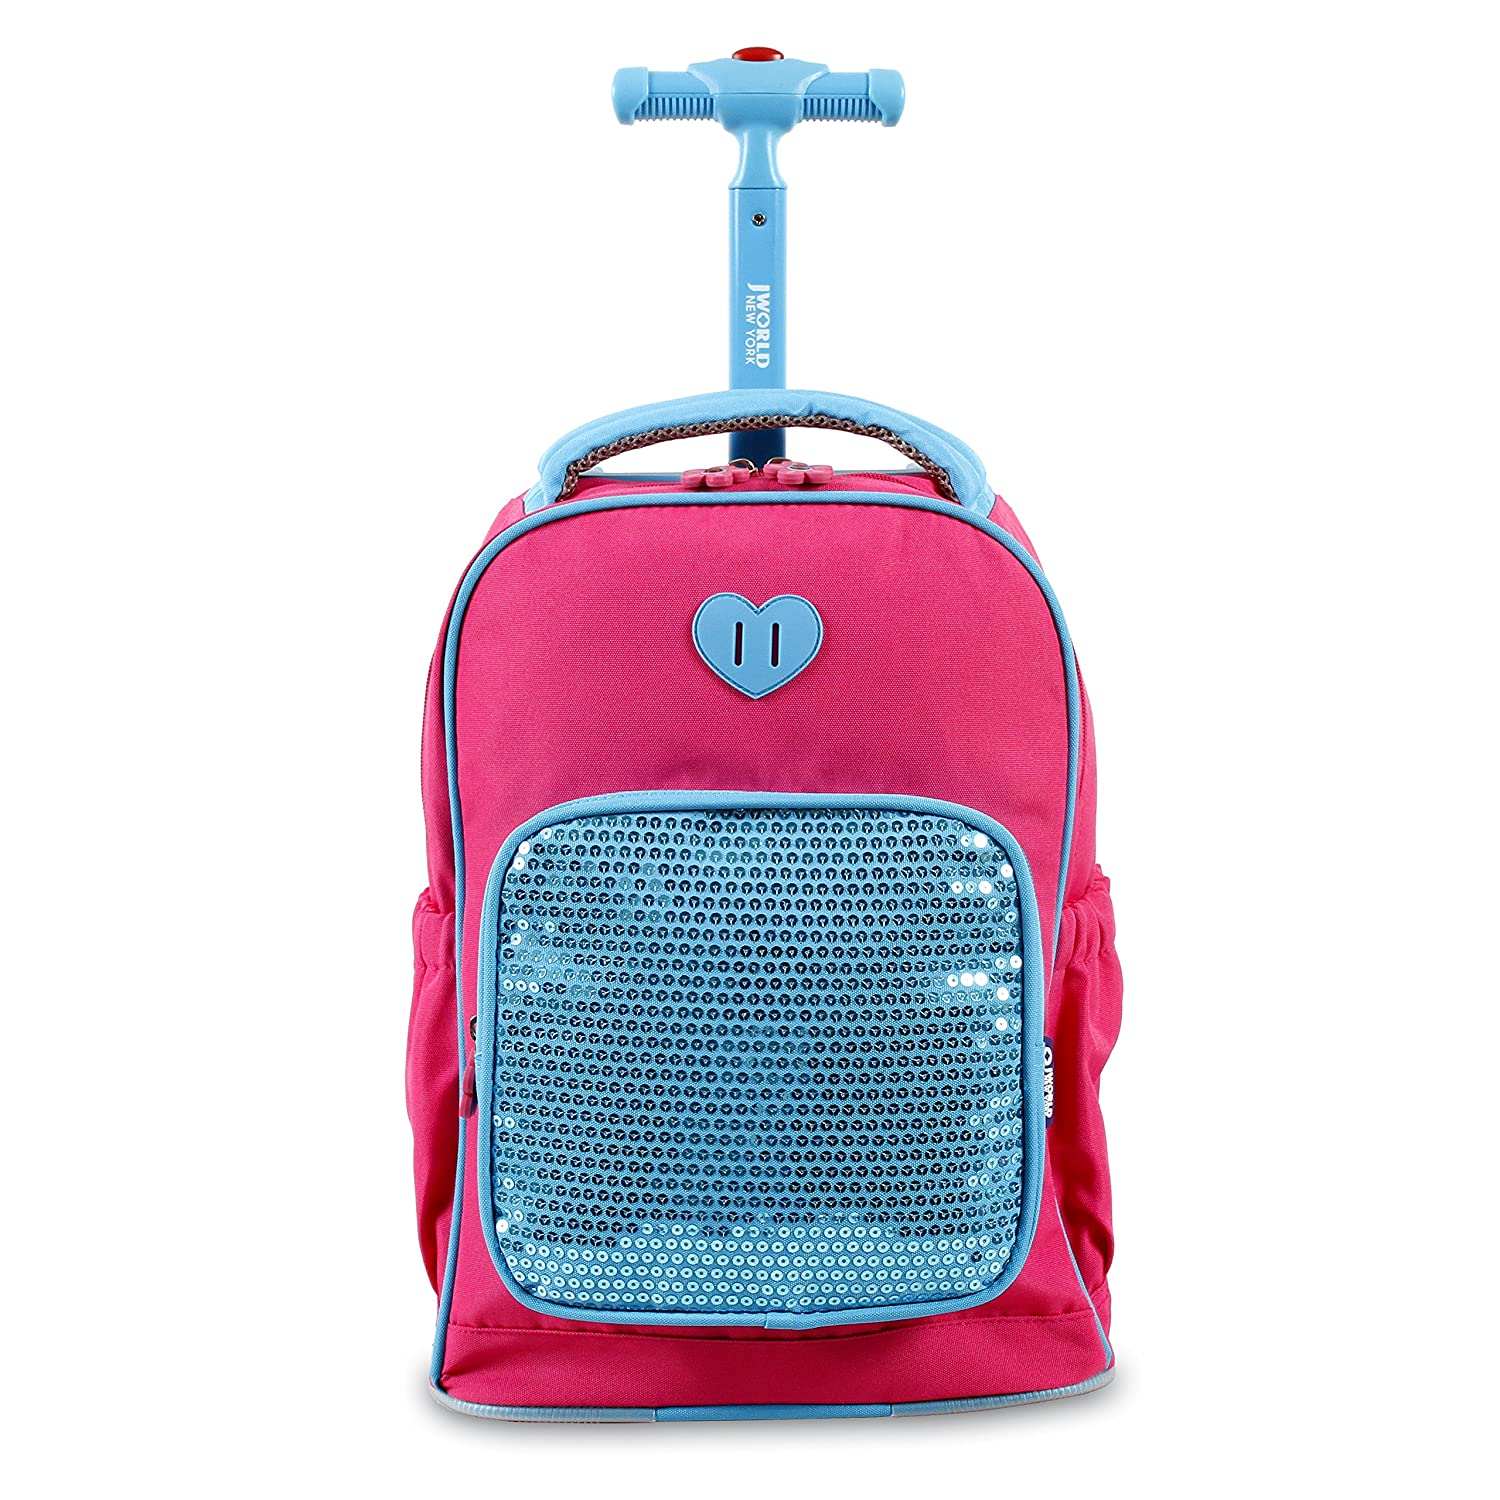 World new york sparkle kids rolling backpack pink kids backpacks jpg  1500x1500 Glitter rolling backpack 4886ecf0b7723